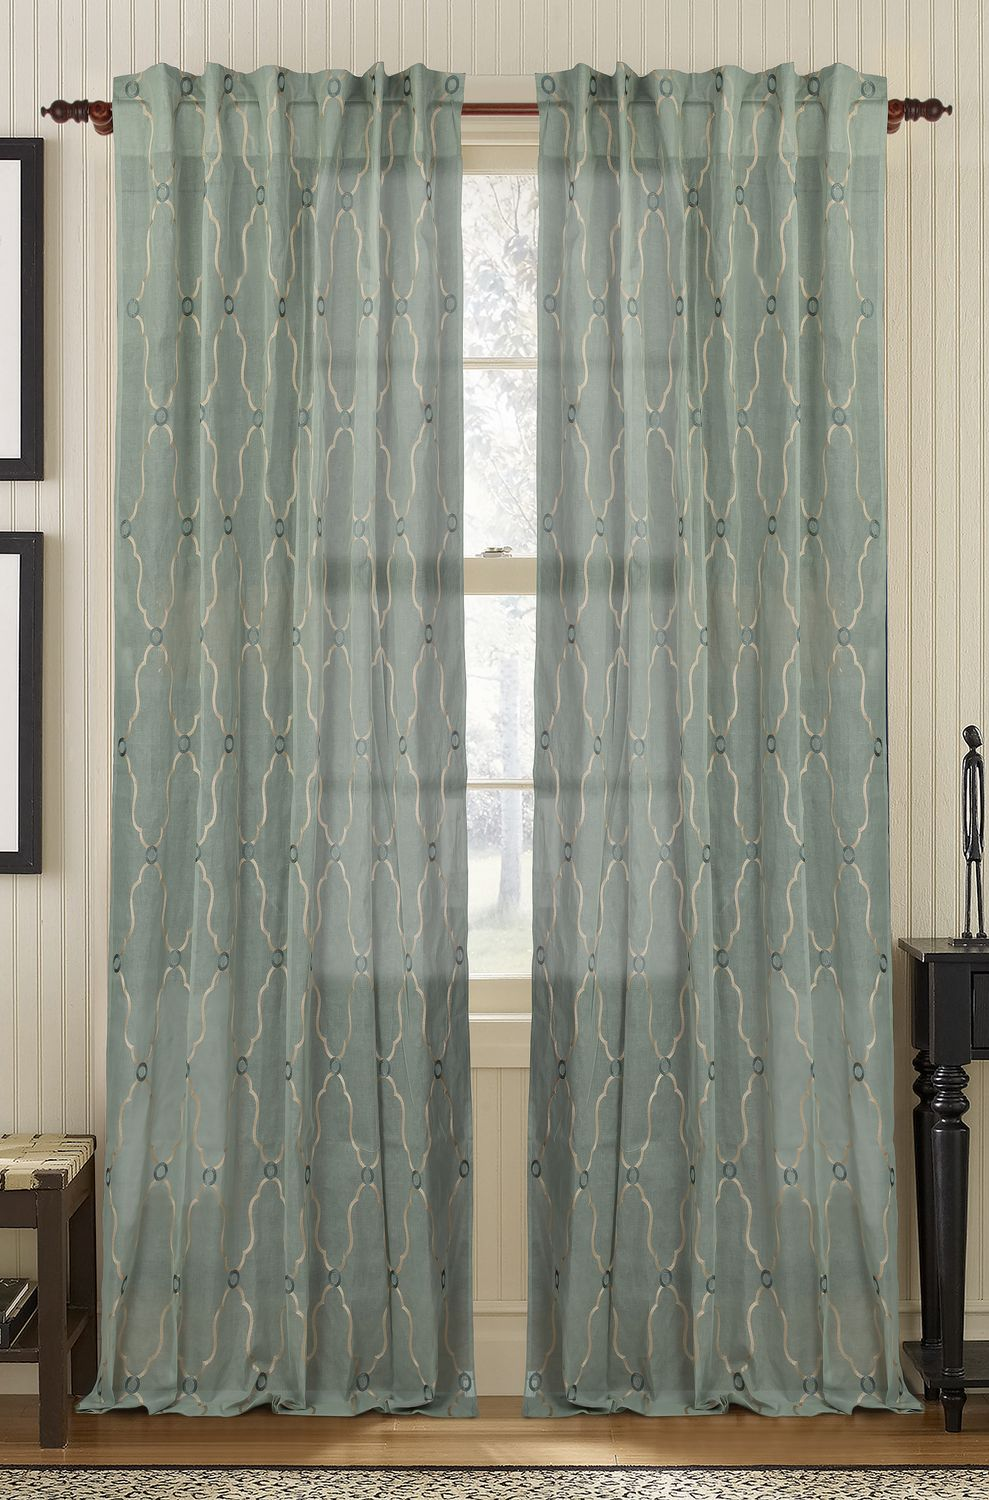 drapes drape the dilemma post jameson over ready panels denver or custom made marni